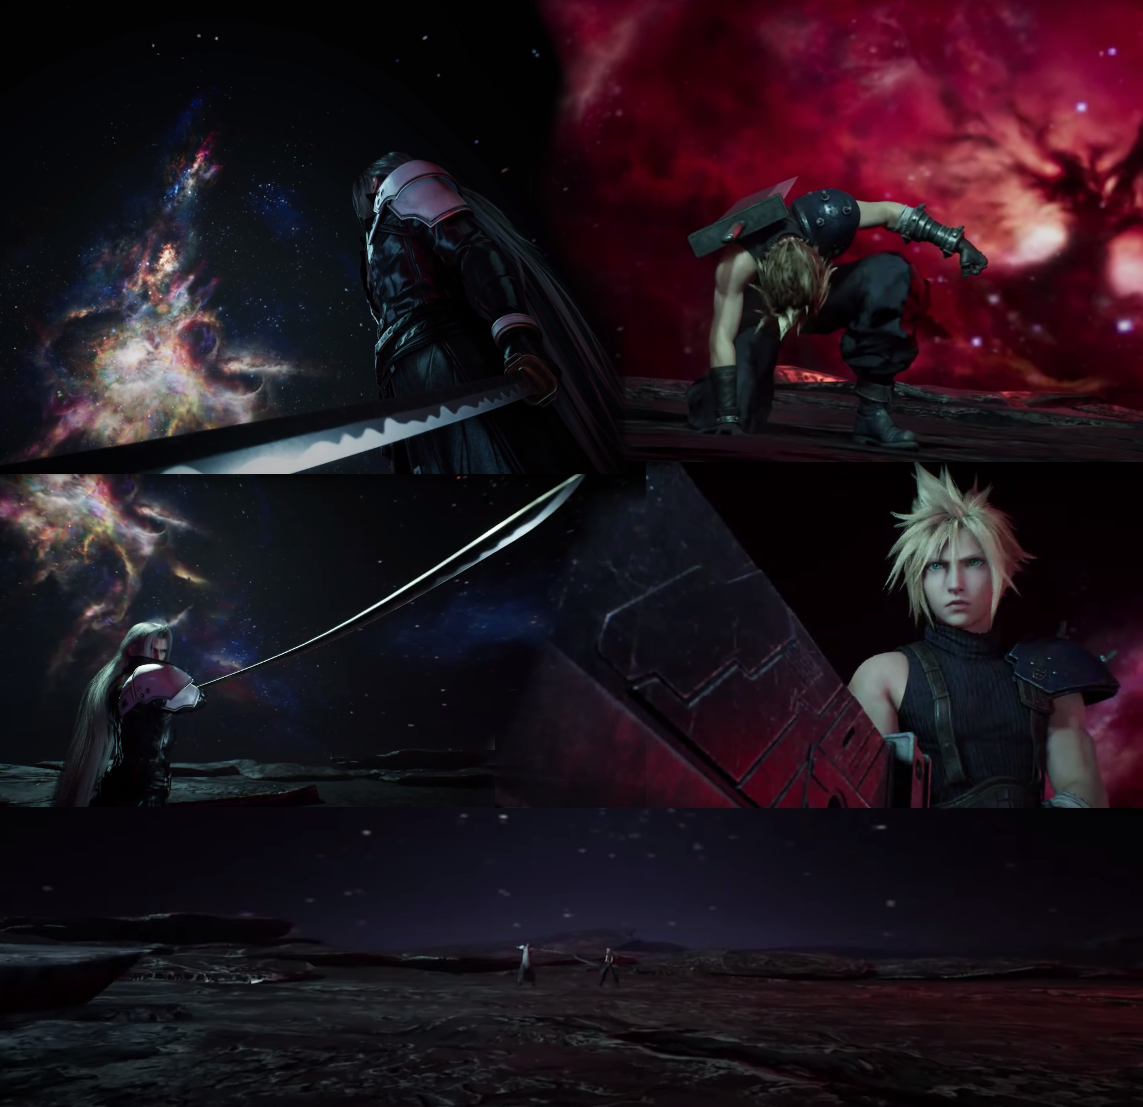 Sephiroth Vs. Cloud Edge of Creation